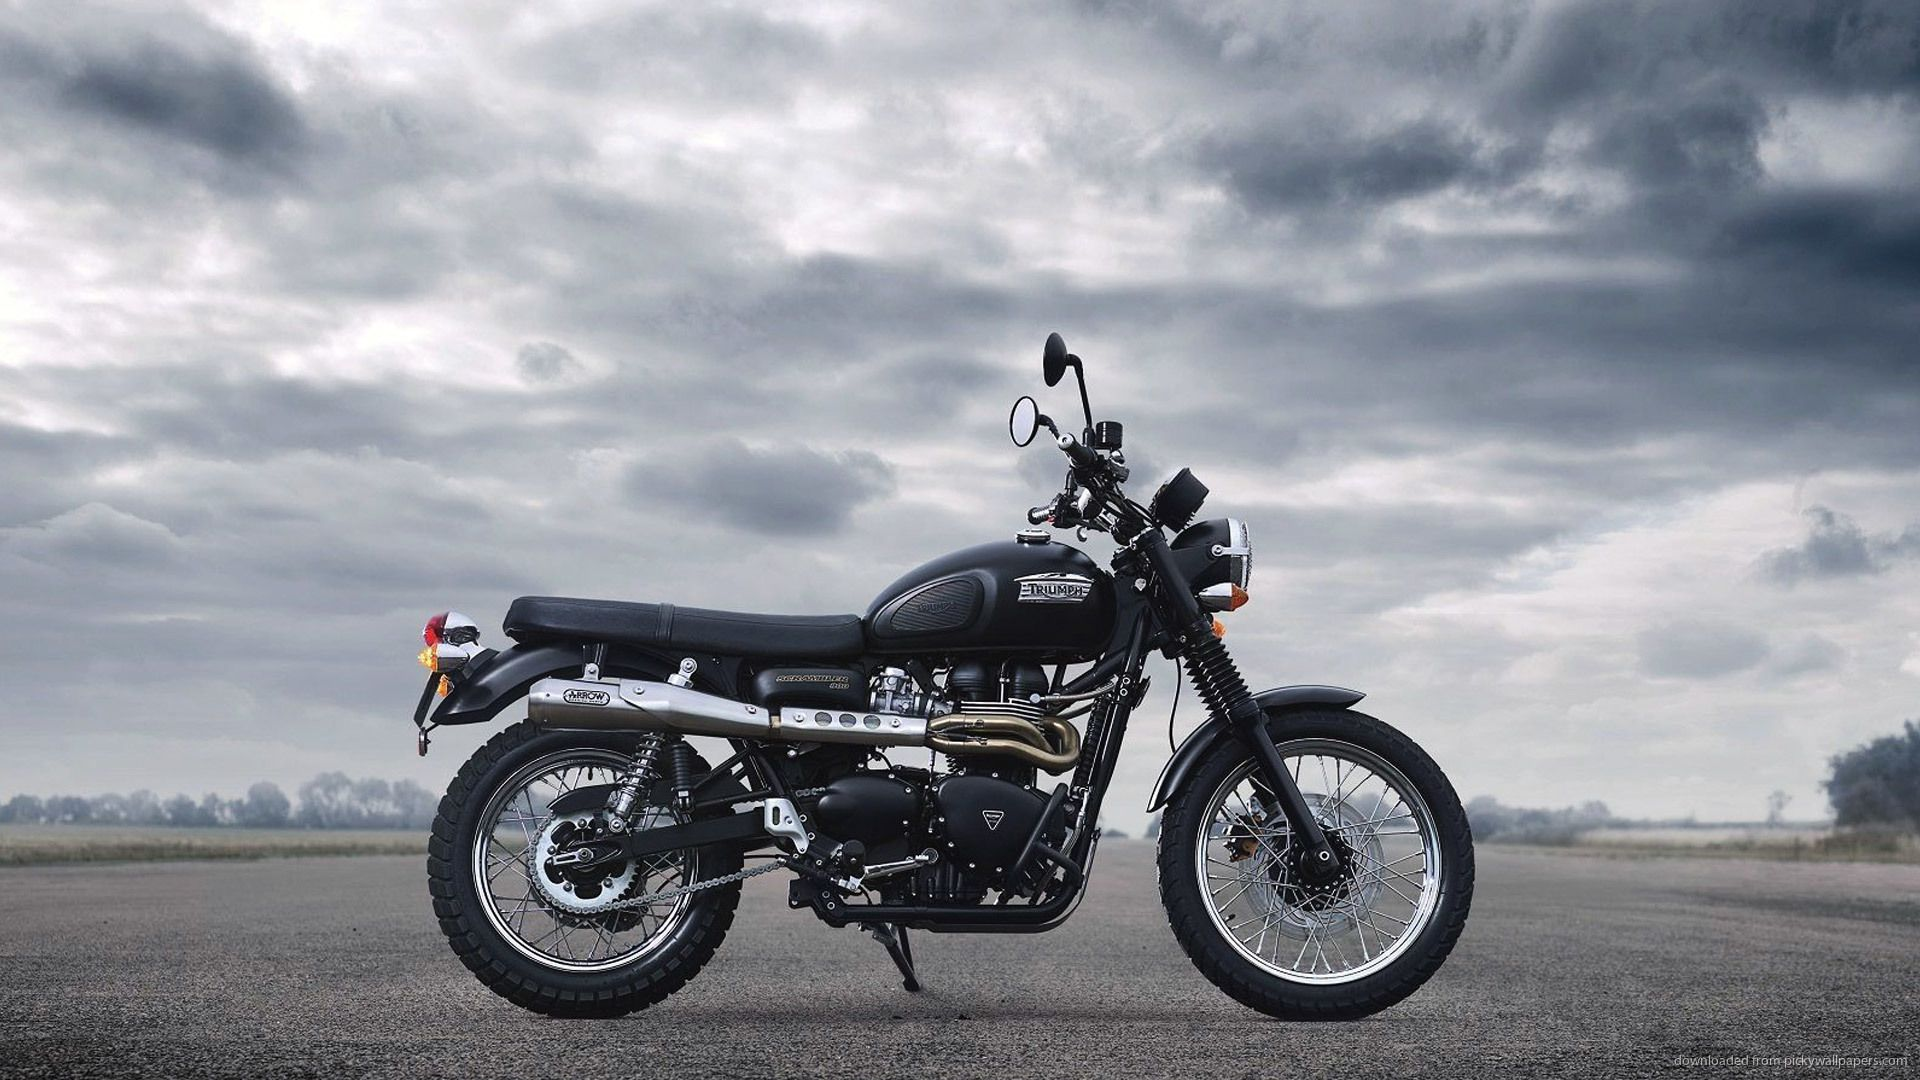 Triumph Motorcycle Wallpapers Top Free Triumph Motorcycle